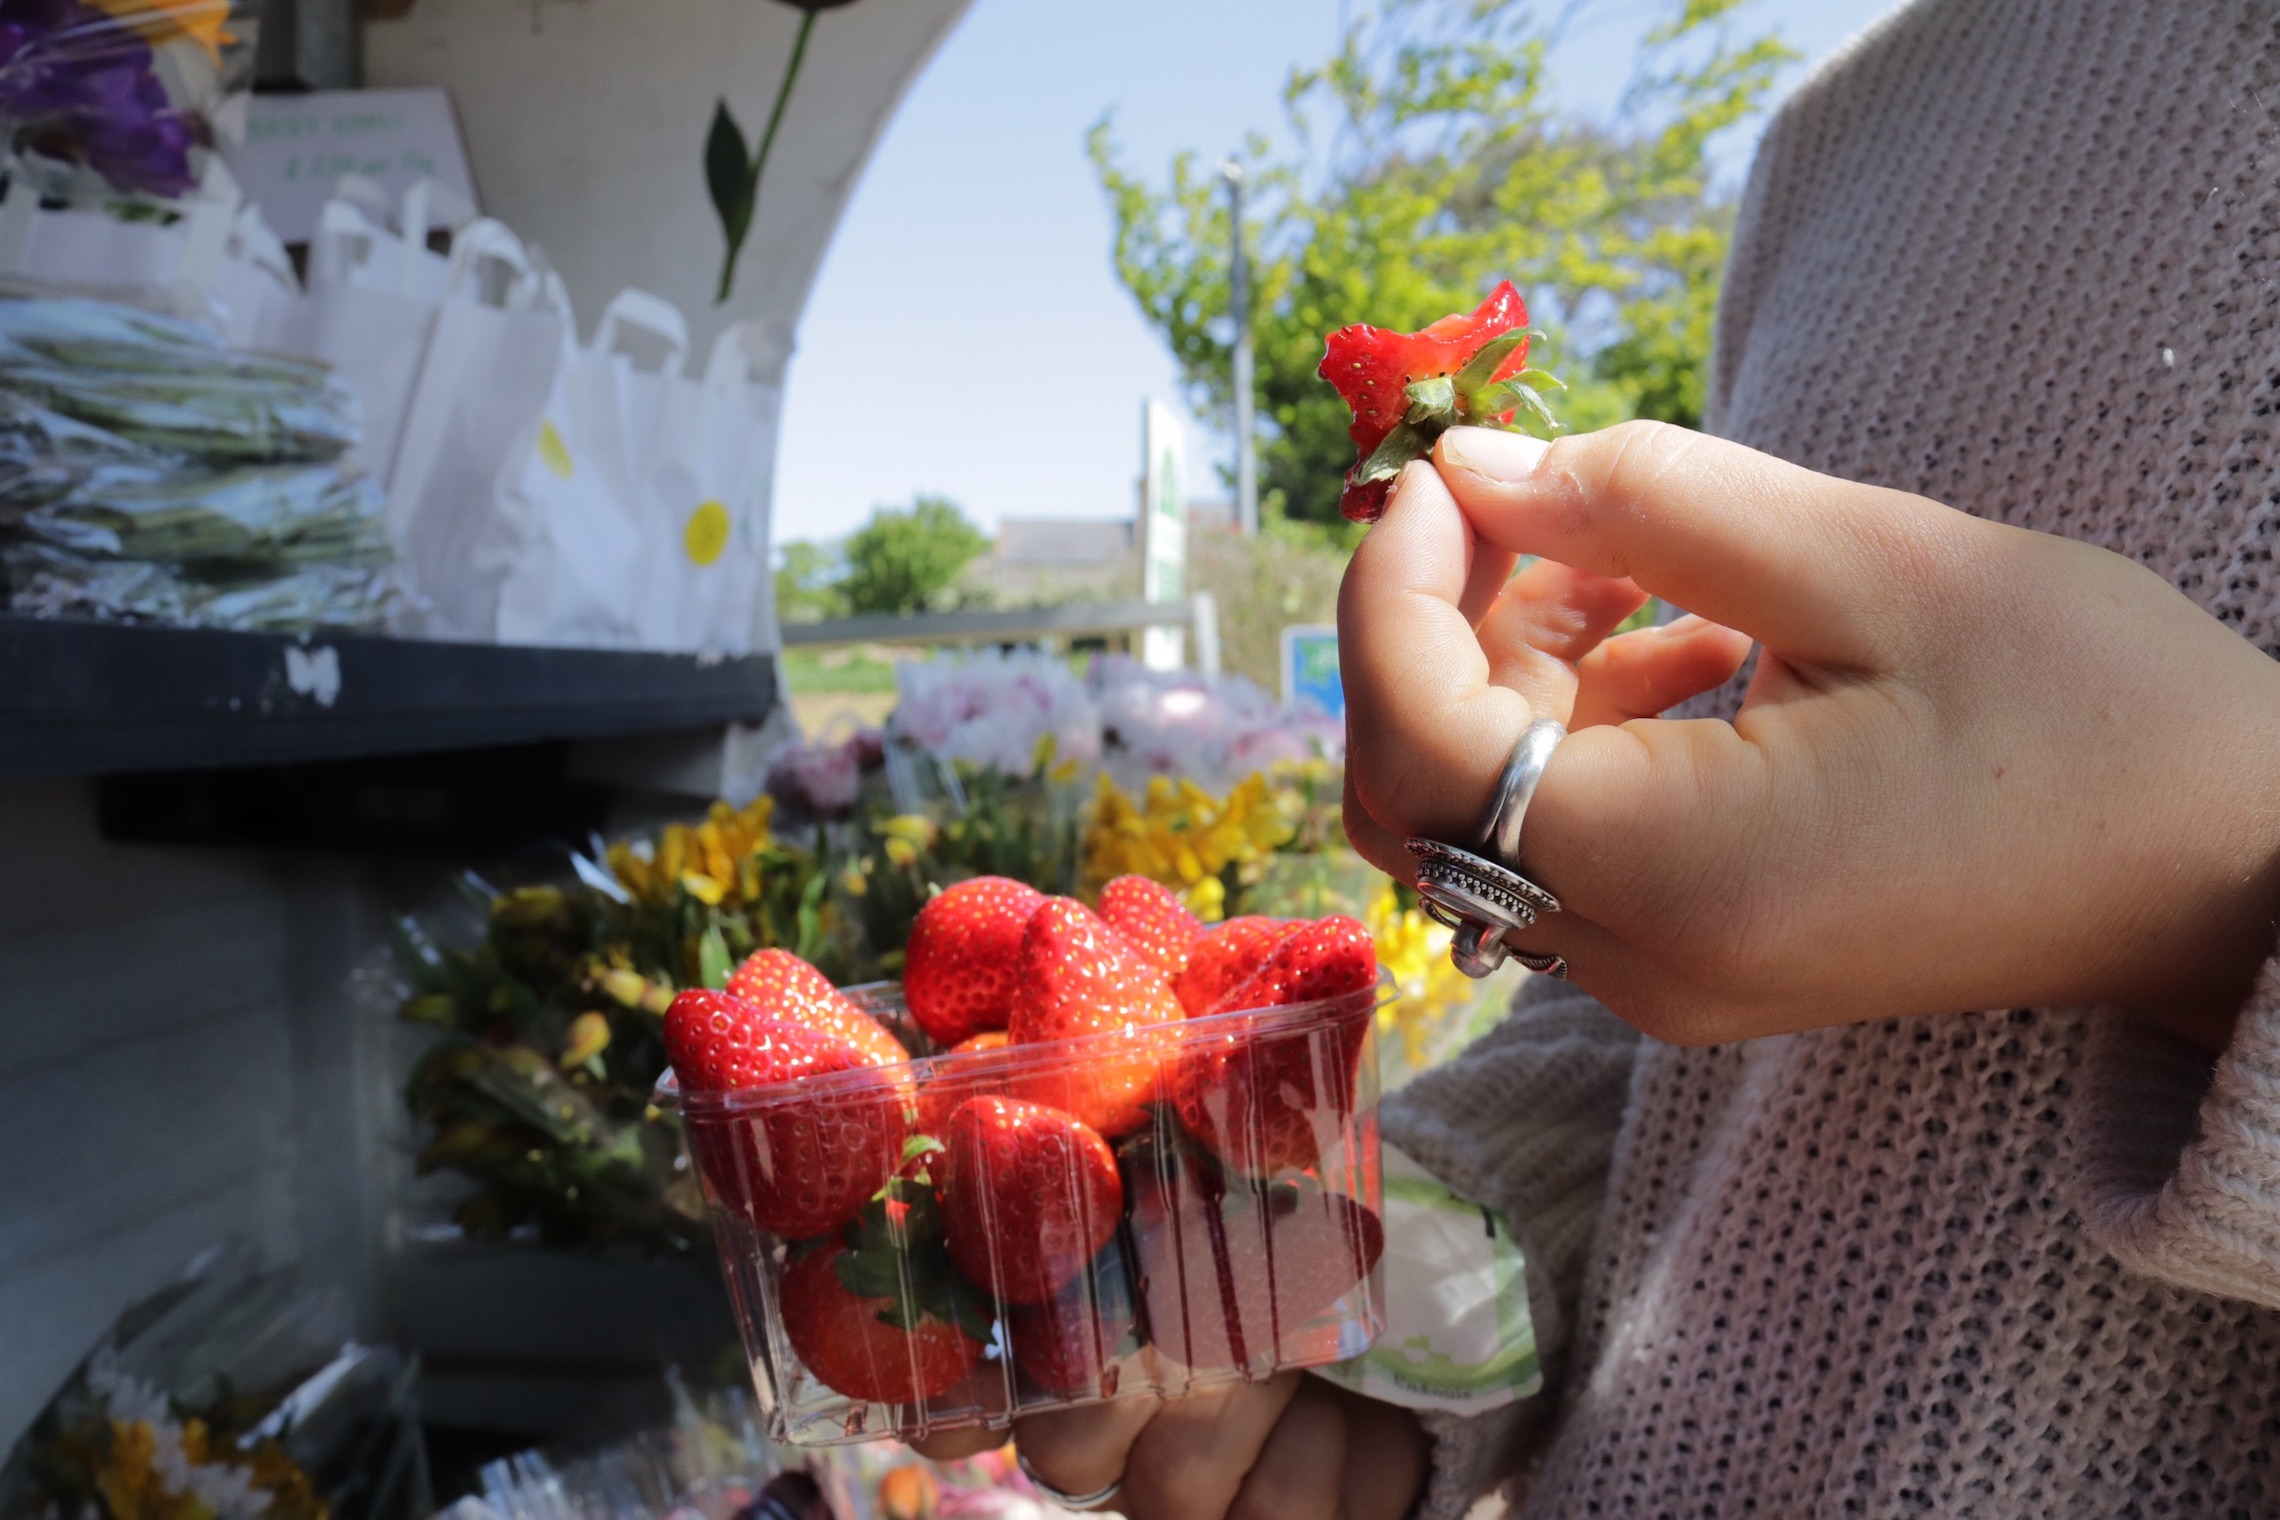 Purchasing Strawberries from a Roadside Stall